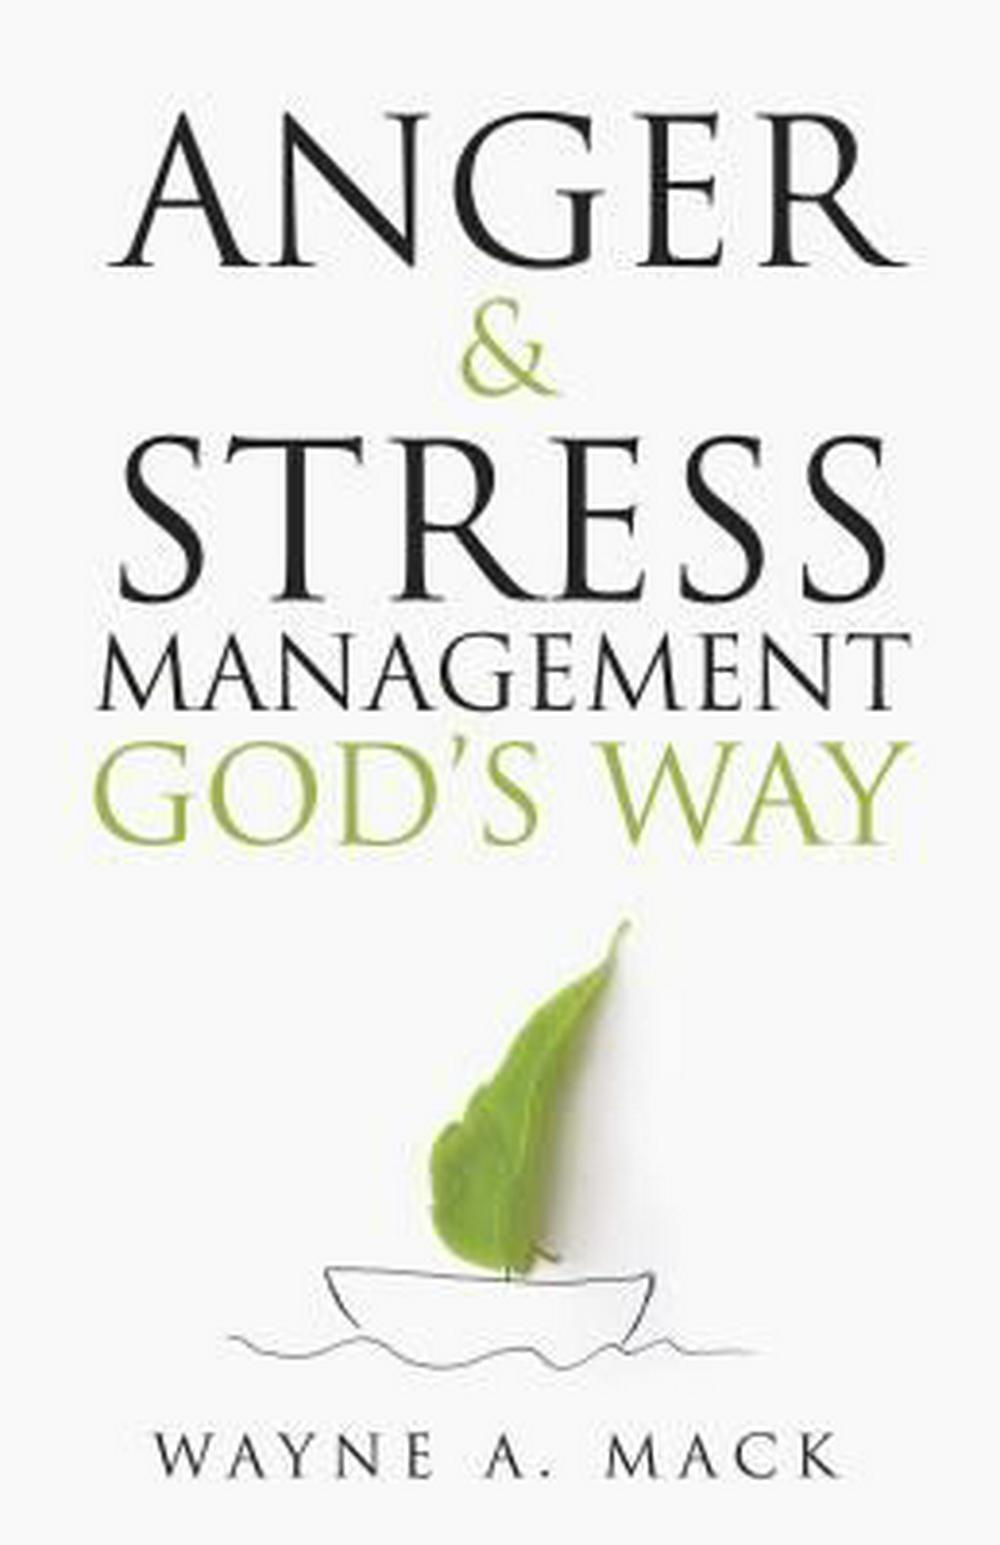 Anger and Stress Management God's Way by Wayne A Mack, ISBN: 9781629952956